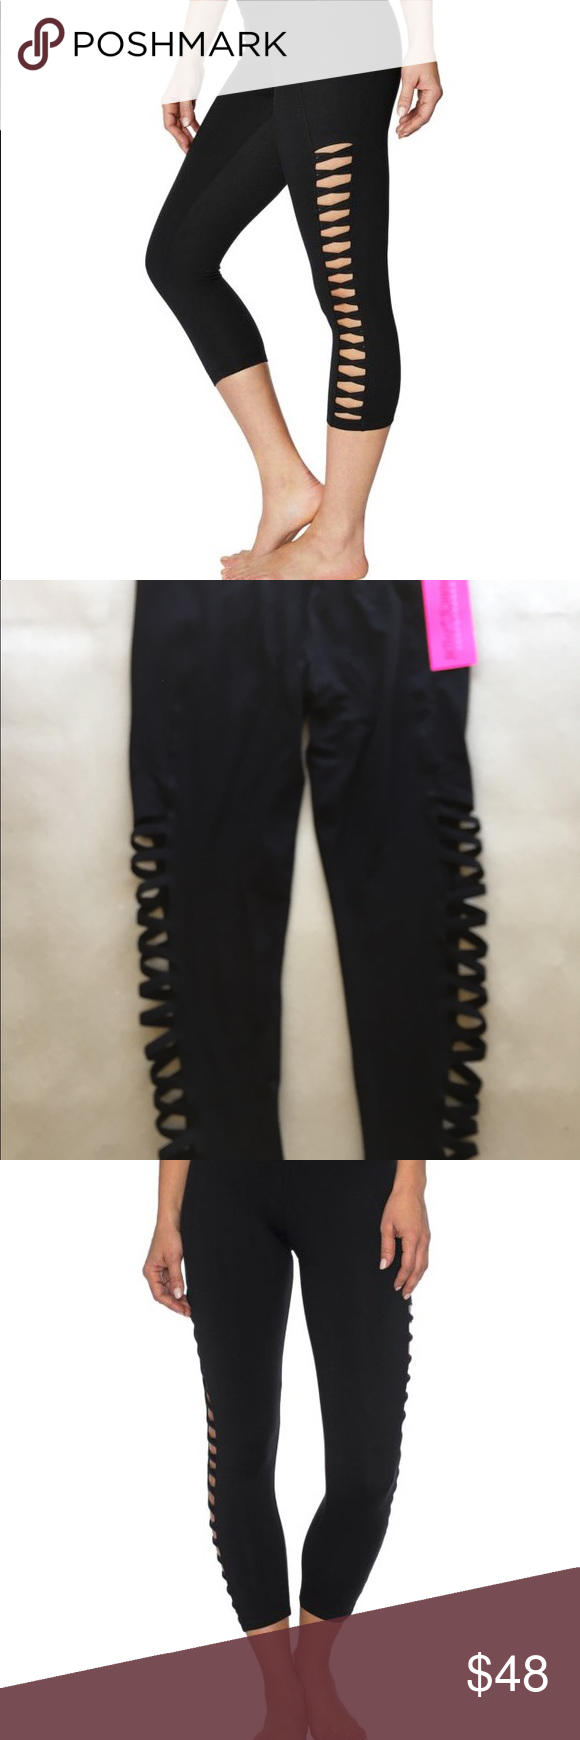 b37415eda439c Betsy Johnson Performance Sz L Black Leggings Athletic performance by Betsey  Johnson New with tag Pull-on style Side cutouts Elastic waistband Stretch  -knit ...